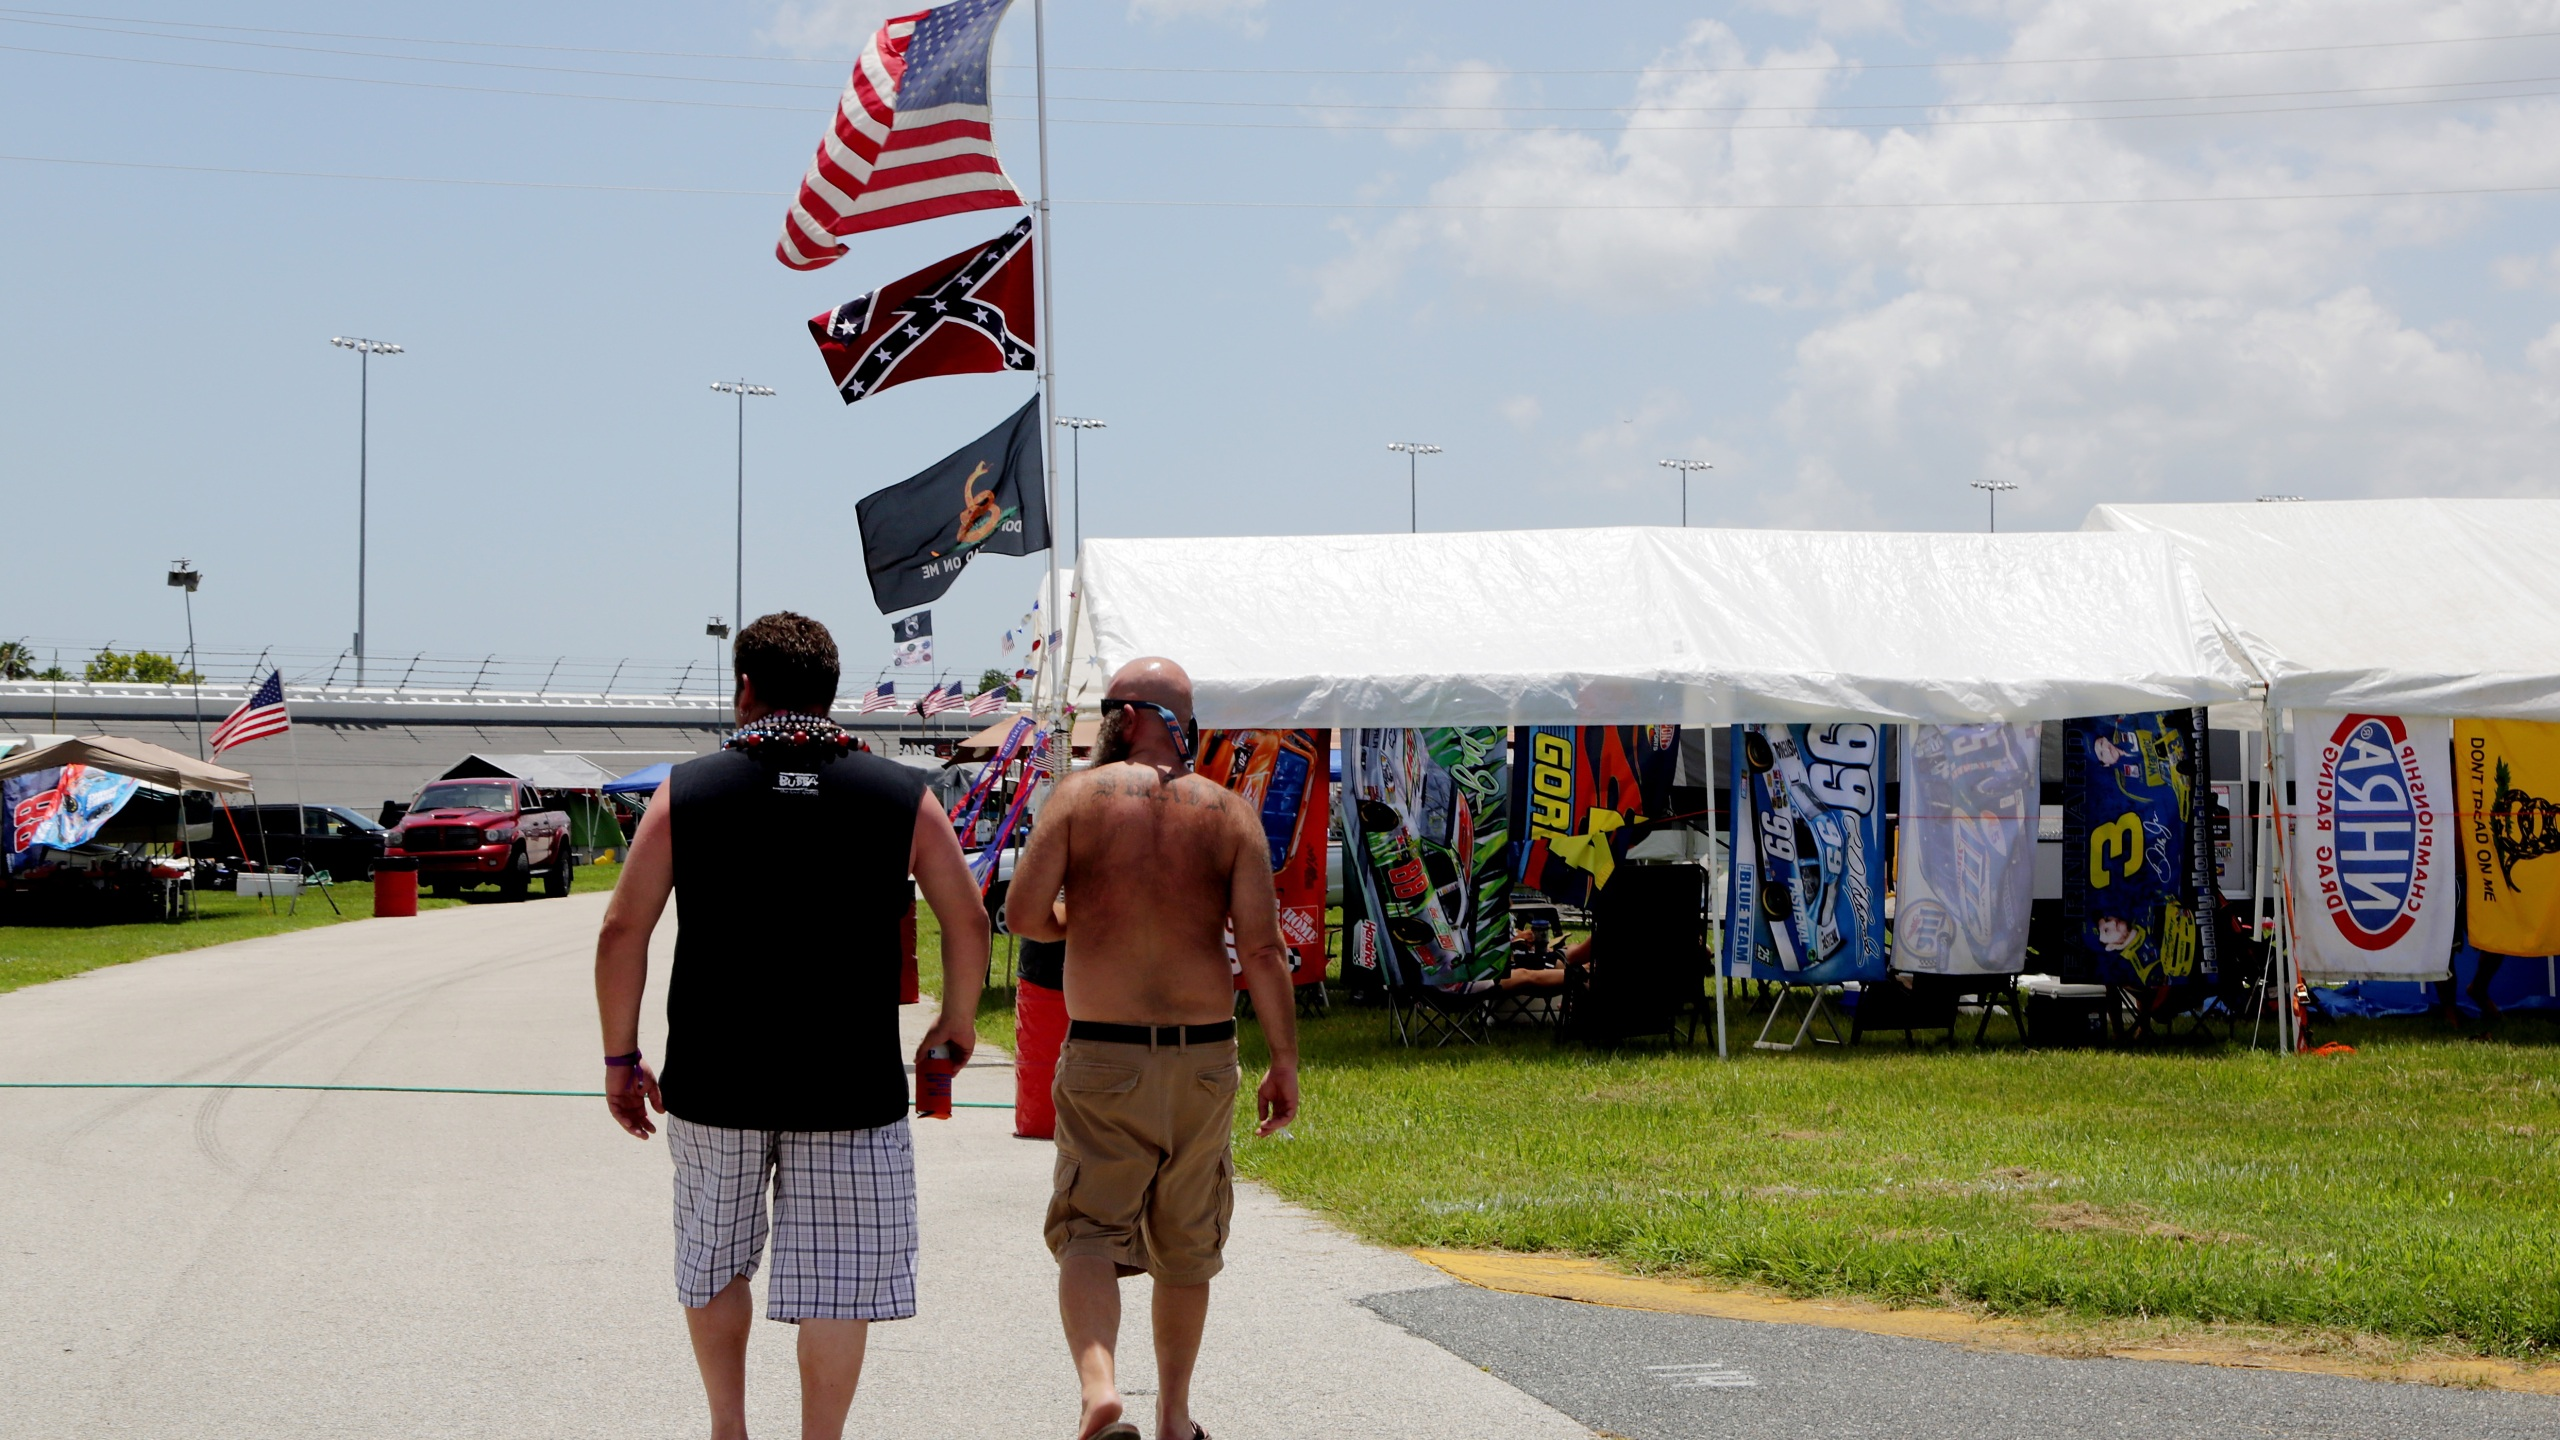 Fans walk past an American flag and a Confederate flag in the camp ground before practice for the NASCAR XFINITY Series Subway Firecracker 250 at Daytona International Speedway on July 3, 2015 in Daytona Beach, Florida. (Photo by Jerry Markland/Getty Images)